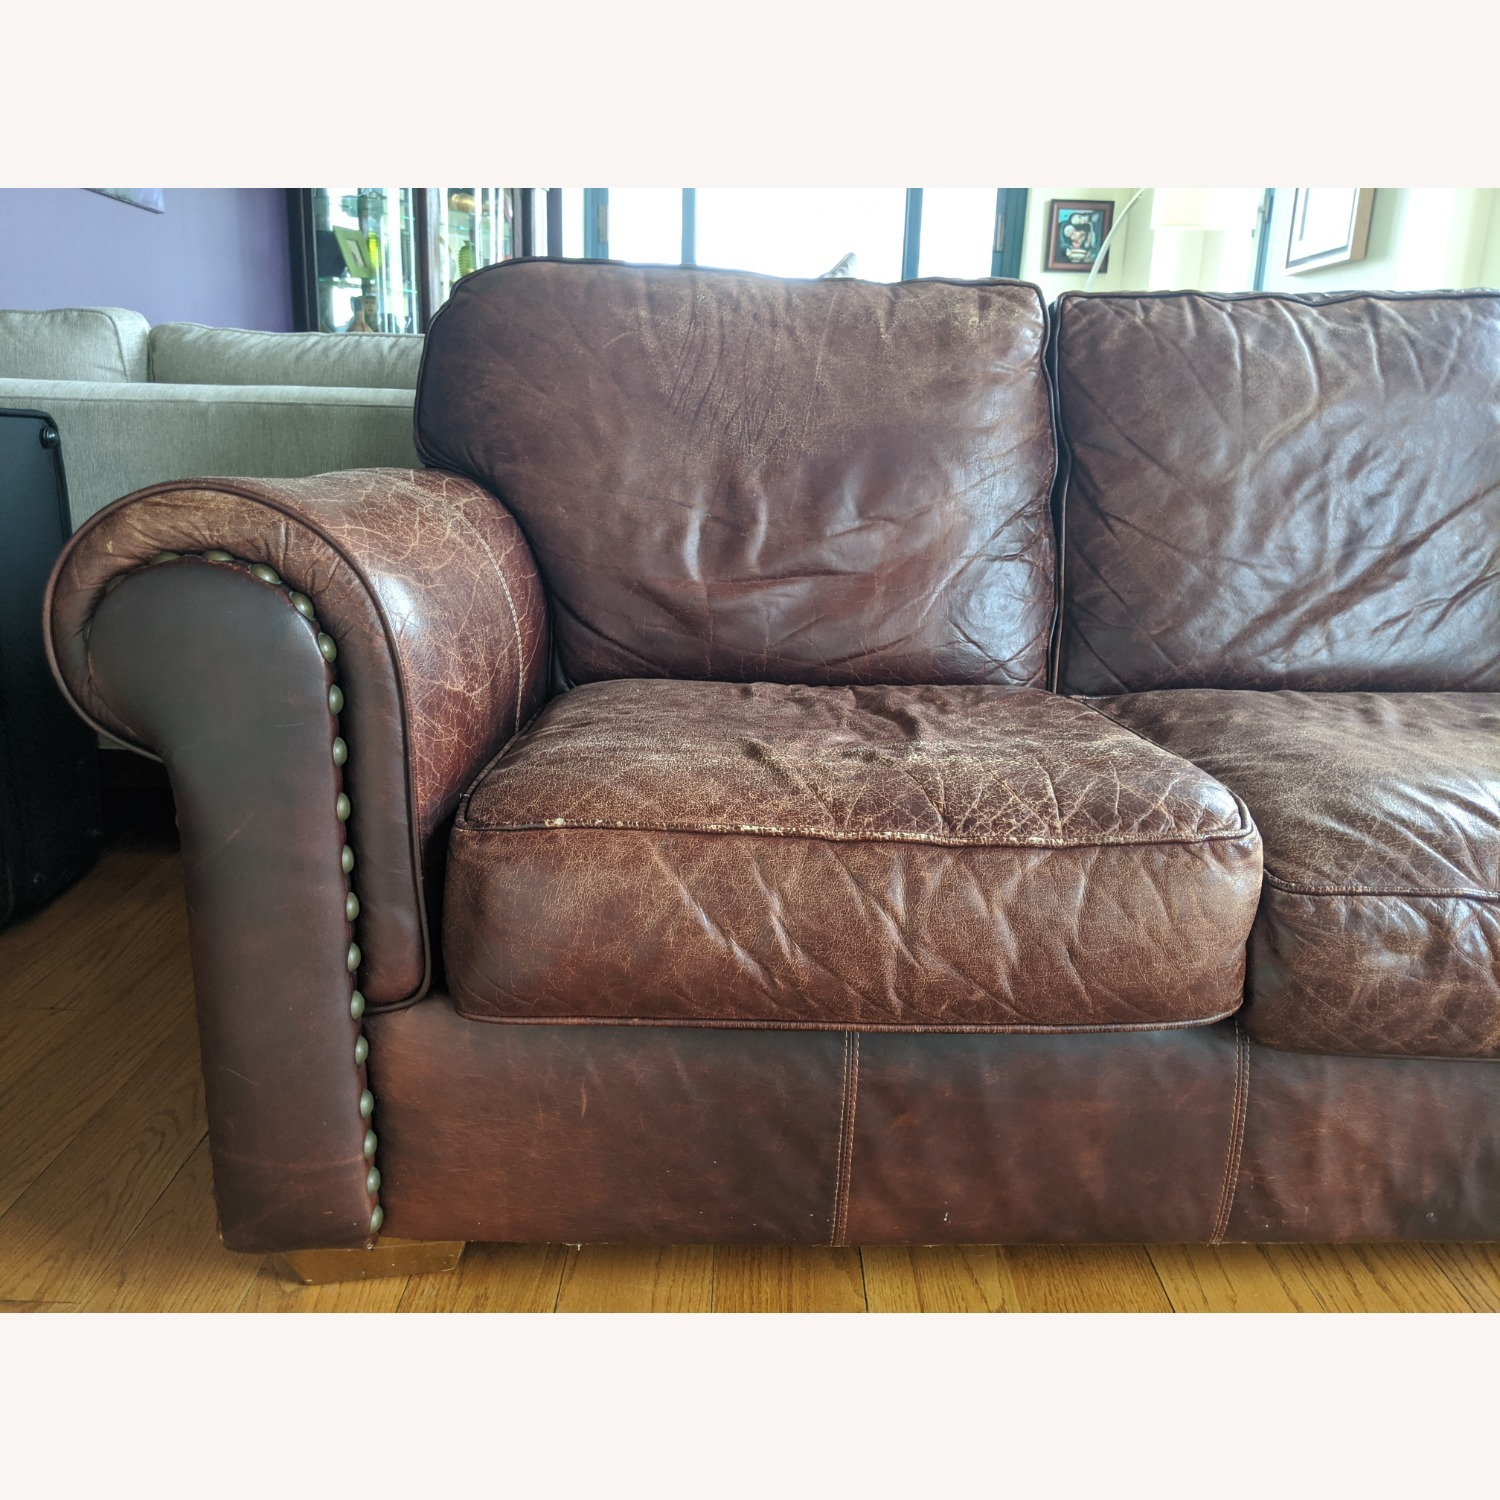 Brown Leather Bauhaus Sofa - image-2